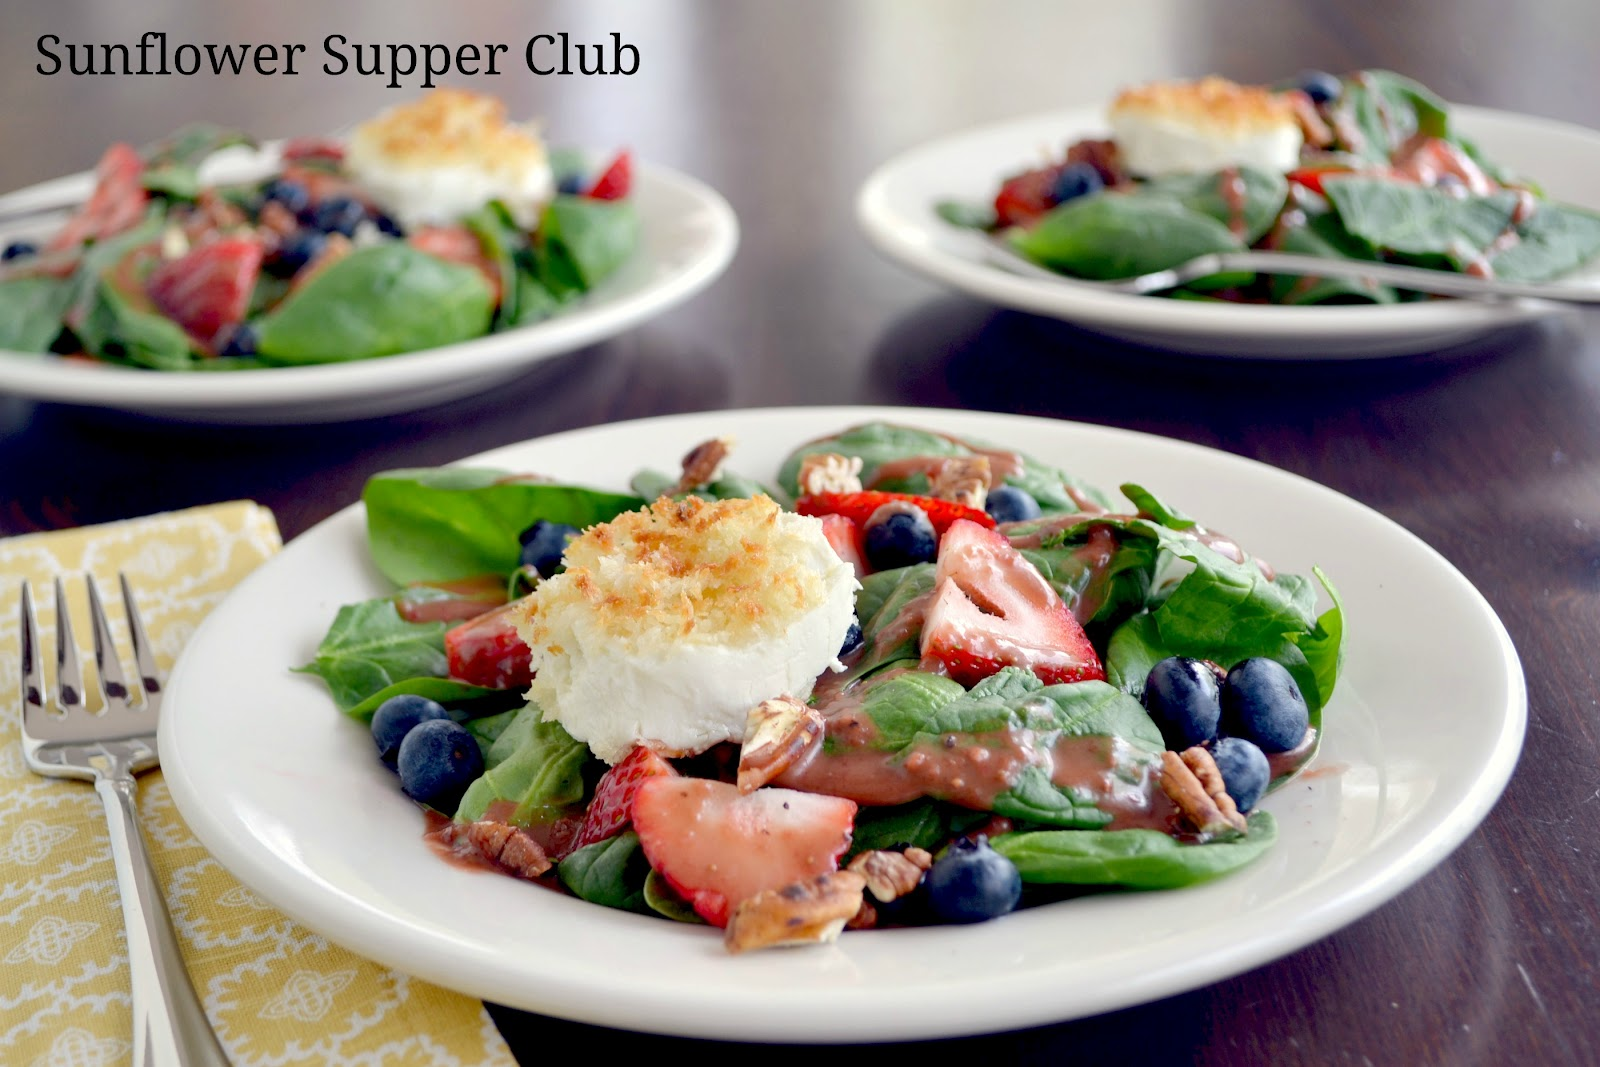 Spinach Salad with Strawberries, Blueberries and Goat Cheese Rounds ...